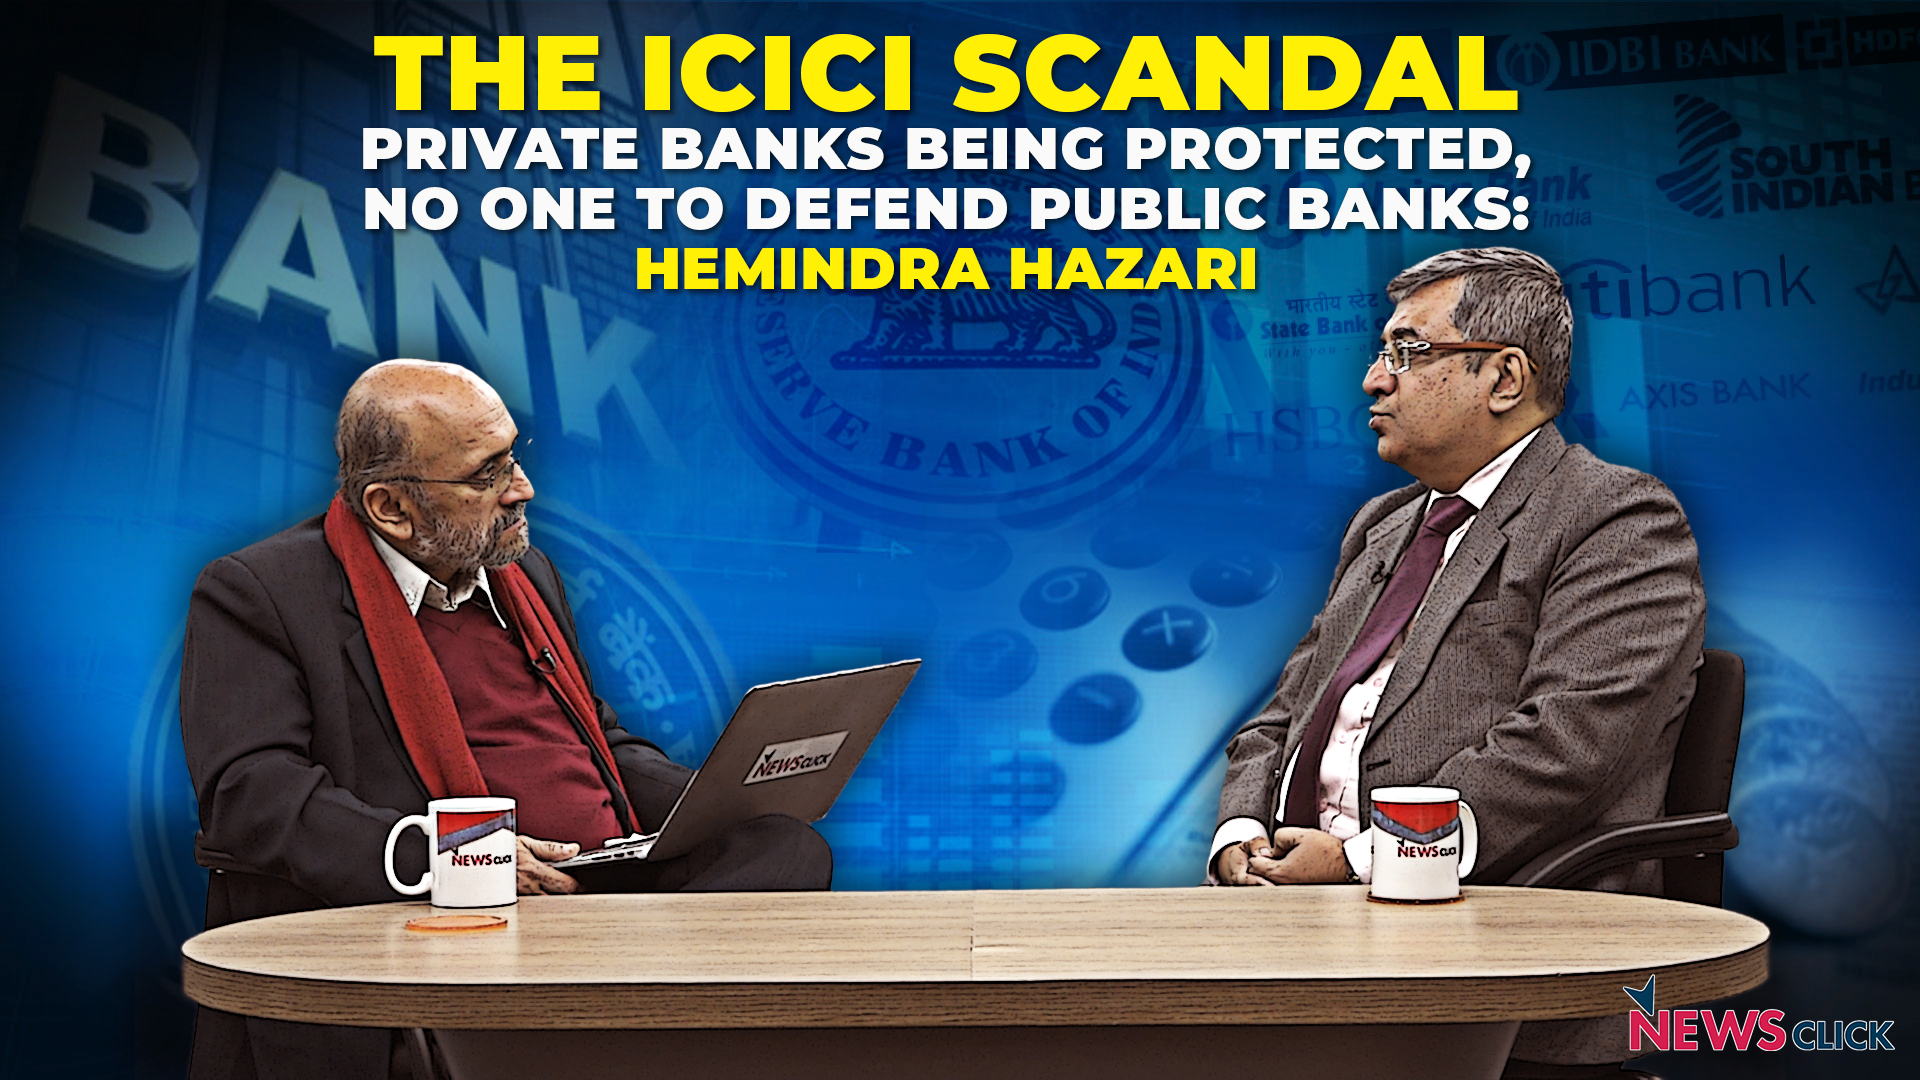 No One to Defend Public Banks